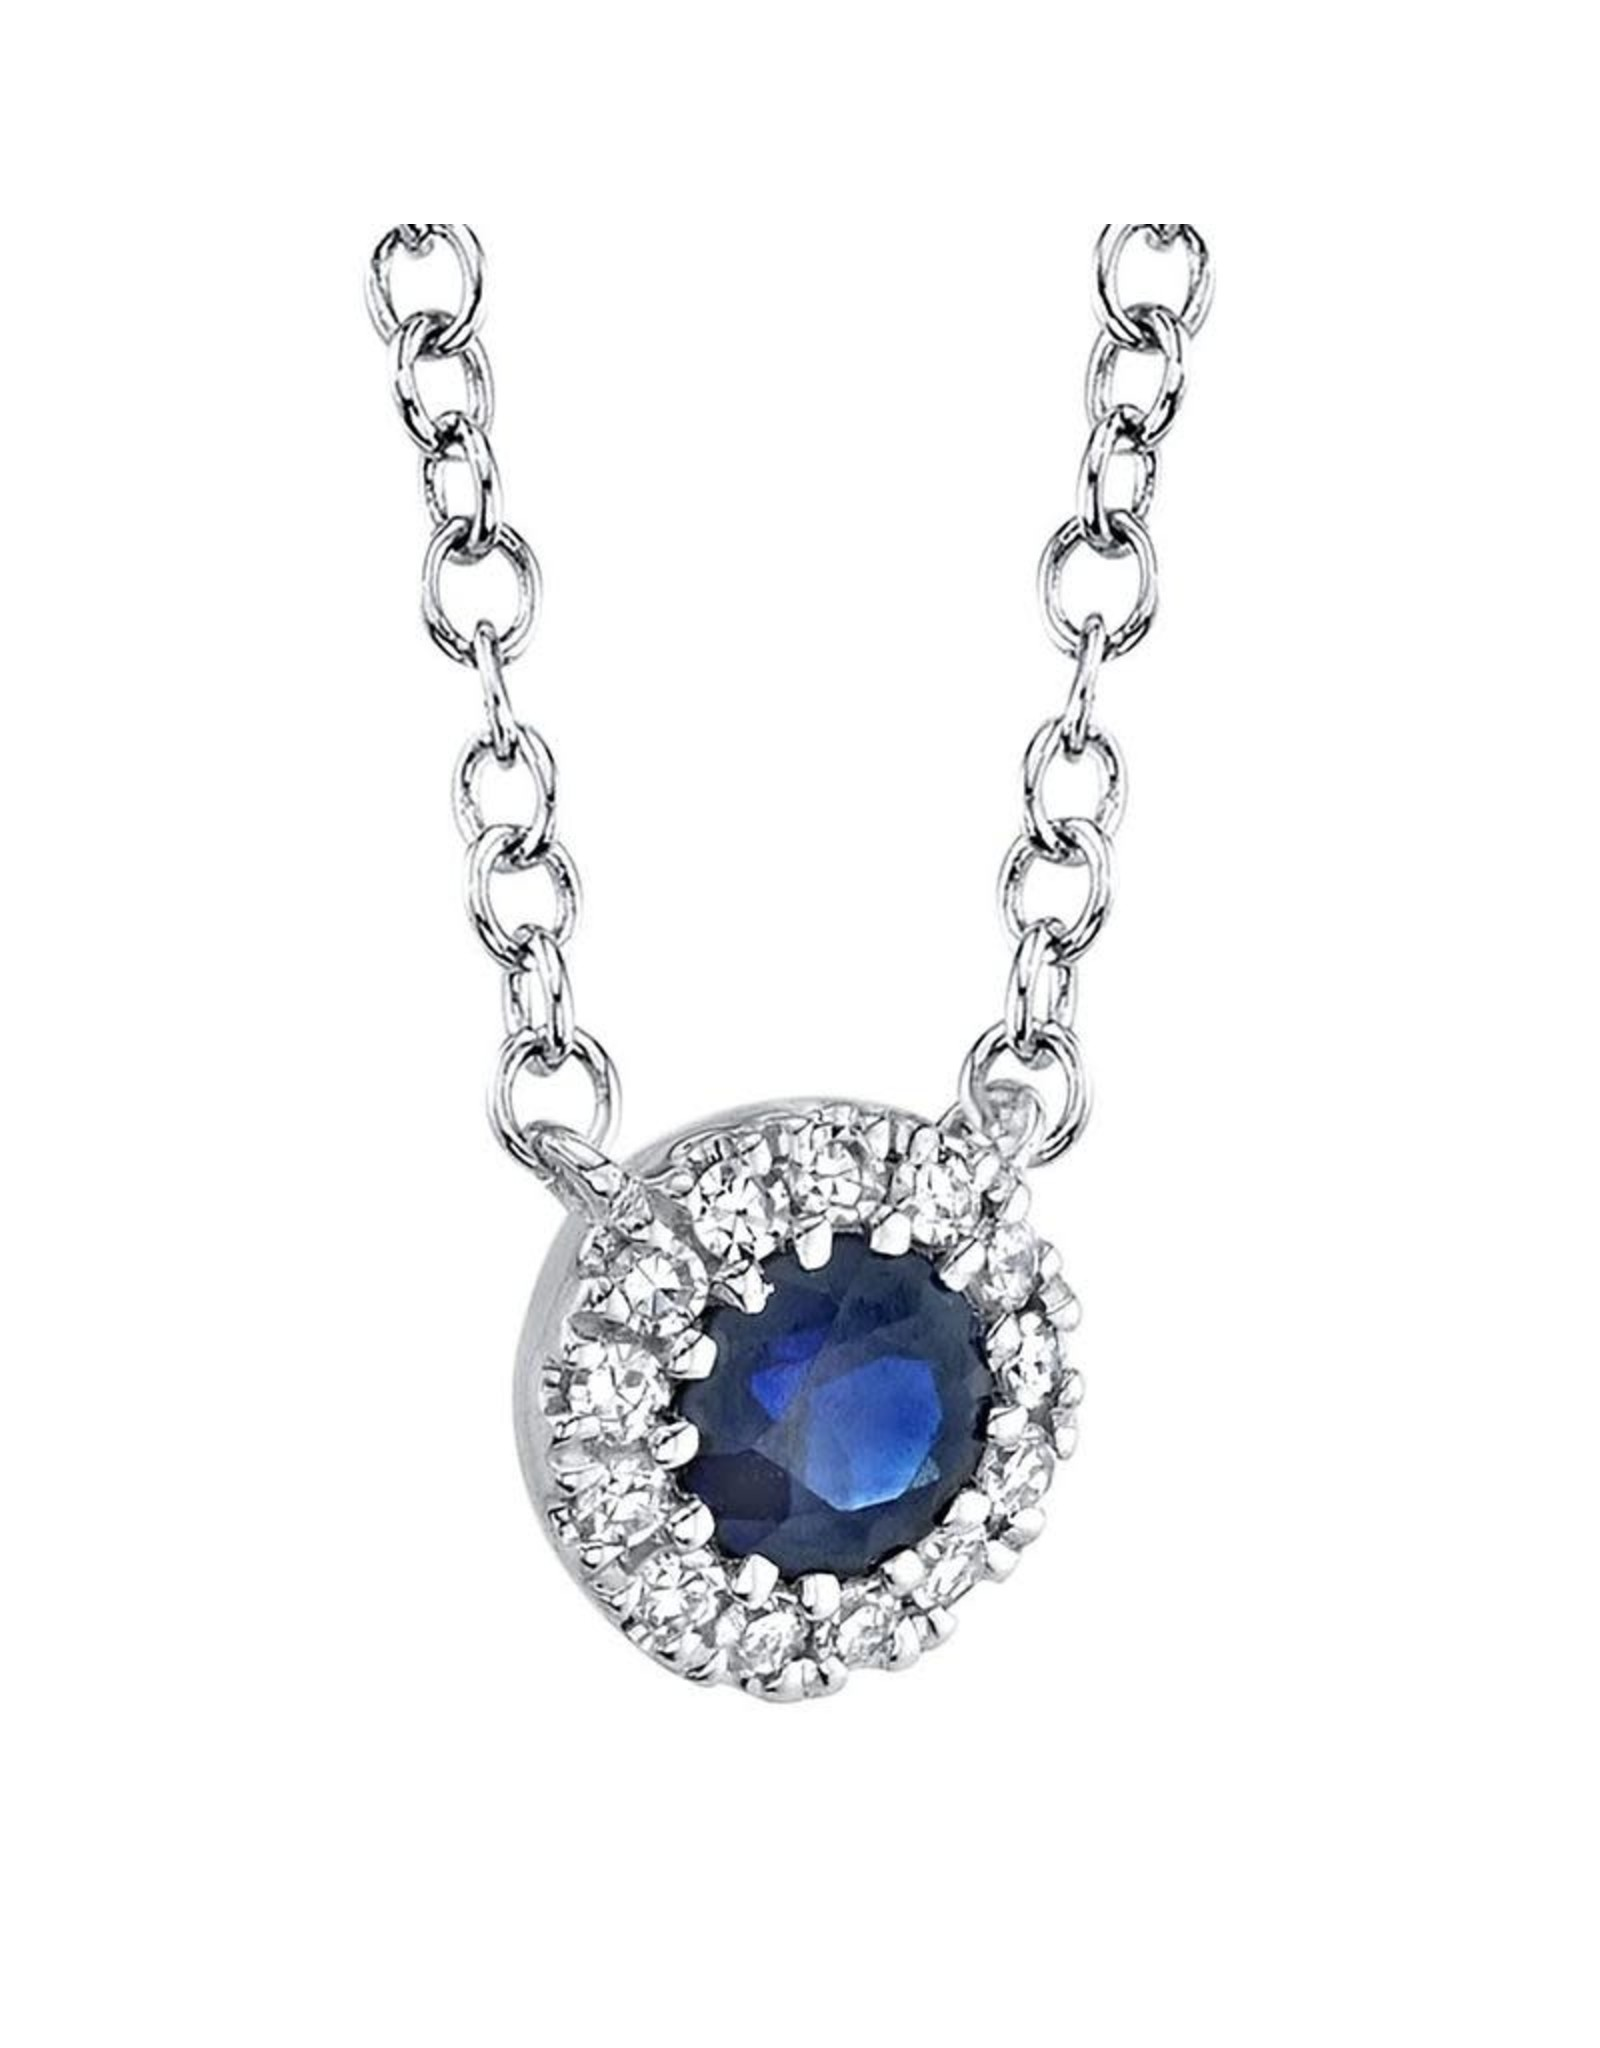 14K White Gold Sapphire and Halo Diamond Necklace, S:  0.14ct, D: 0.04ct